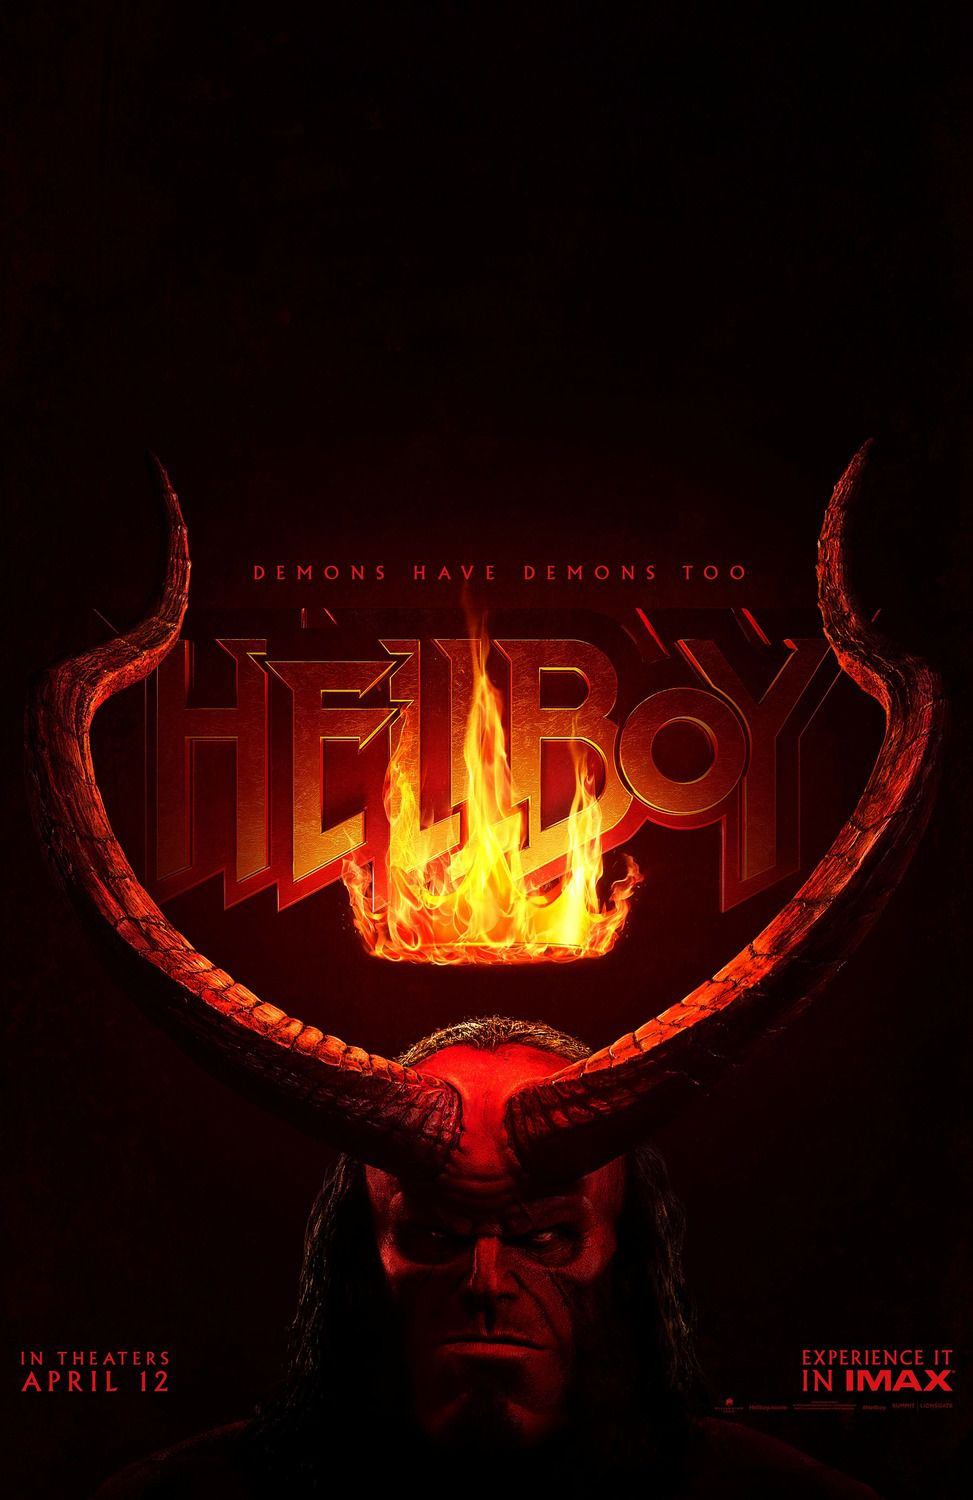 Hellboy (2019) Demons have demons too